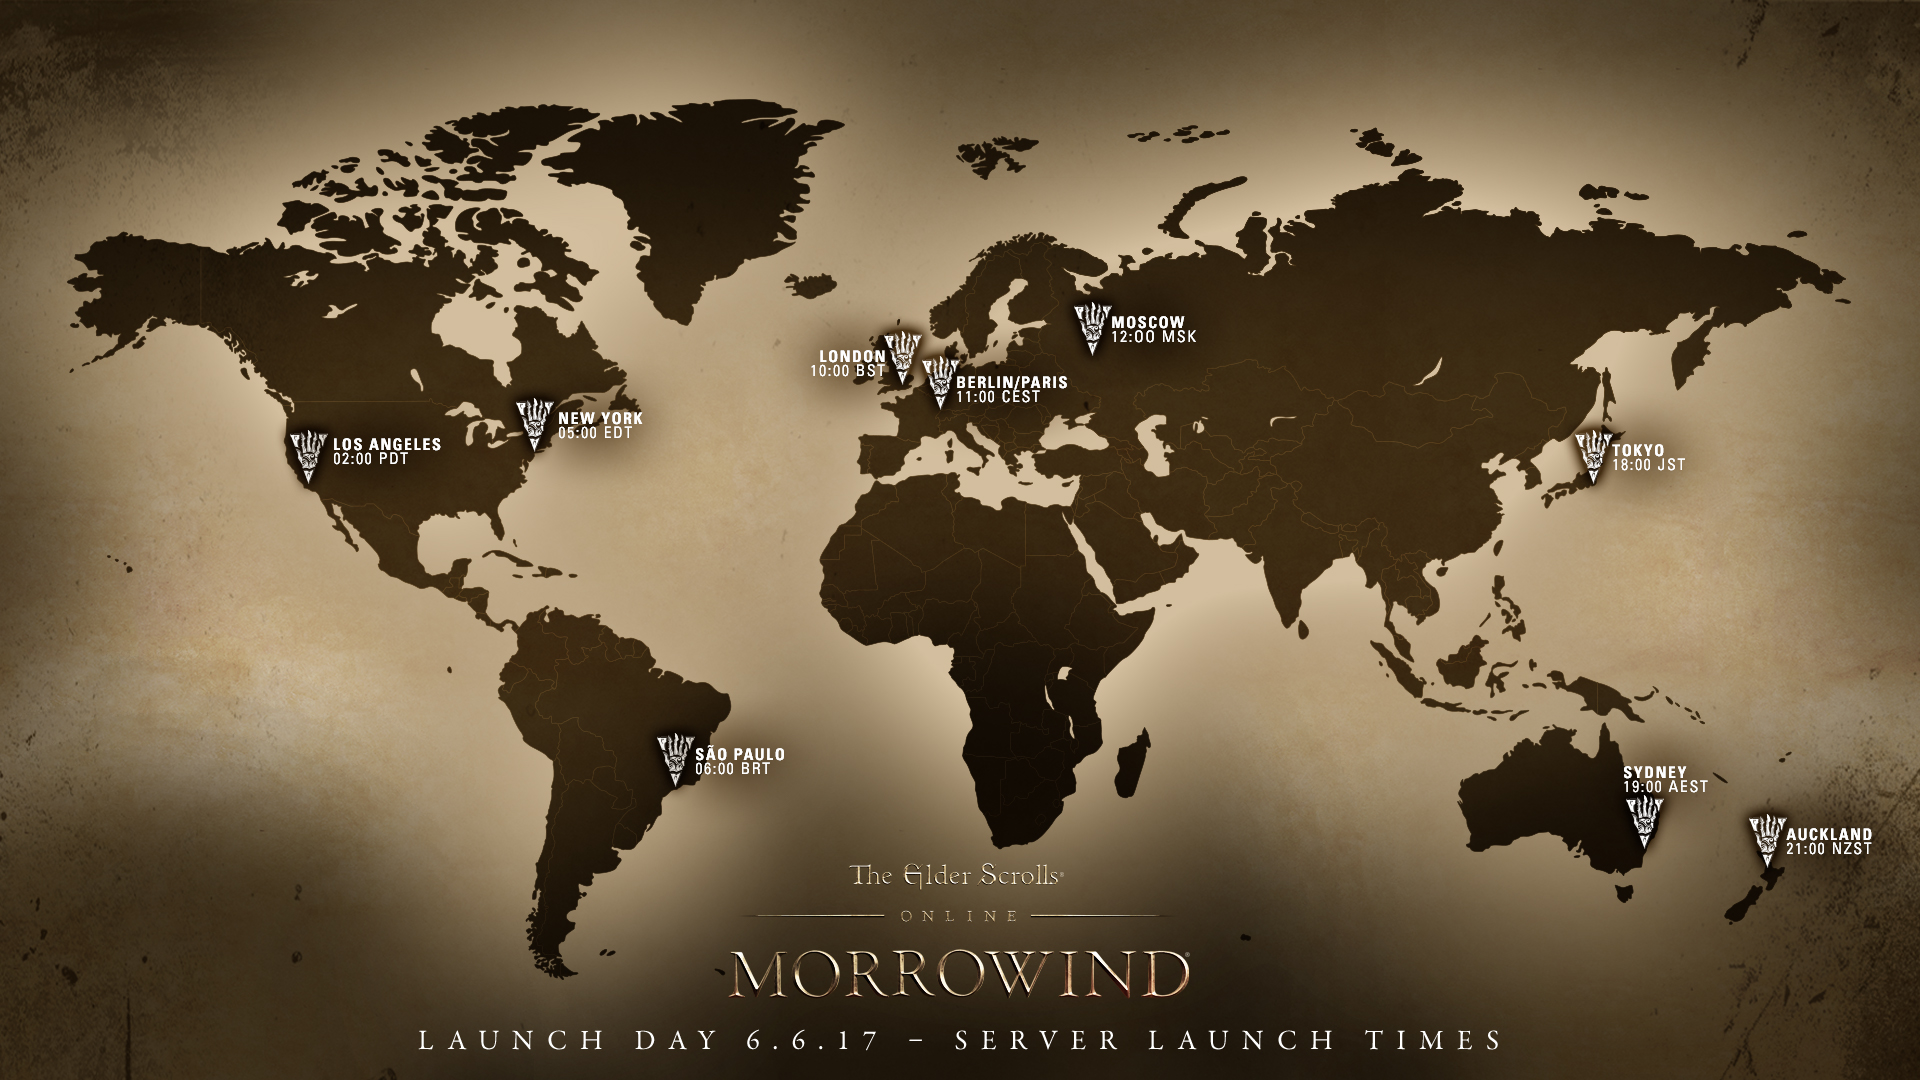 Morrowind-launch-timing-infographic_24HR